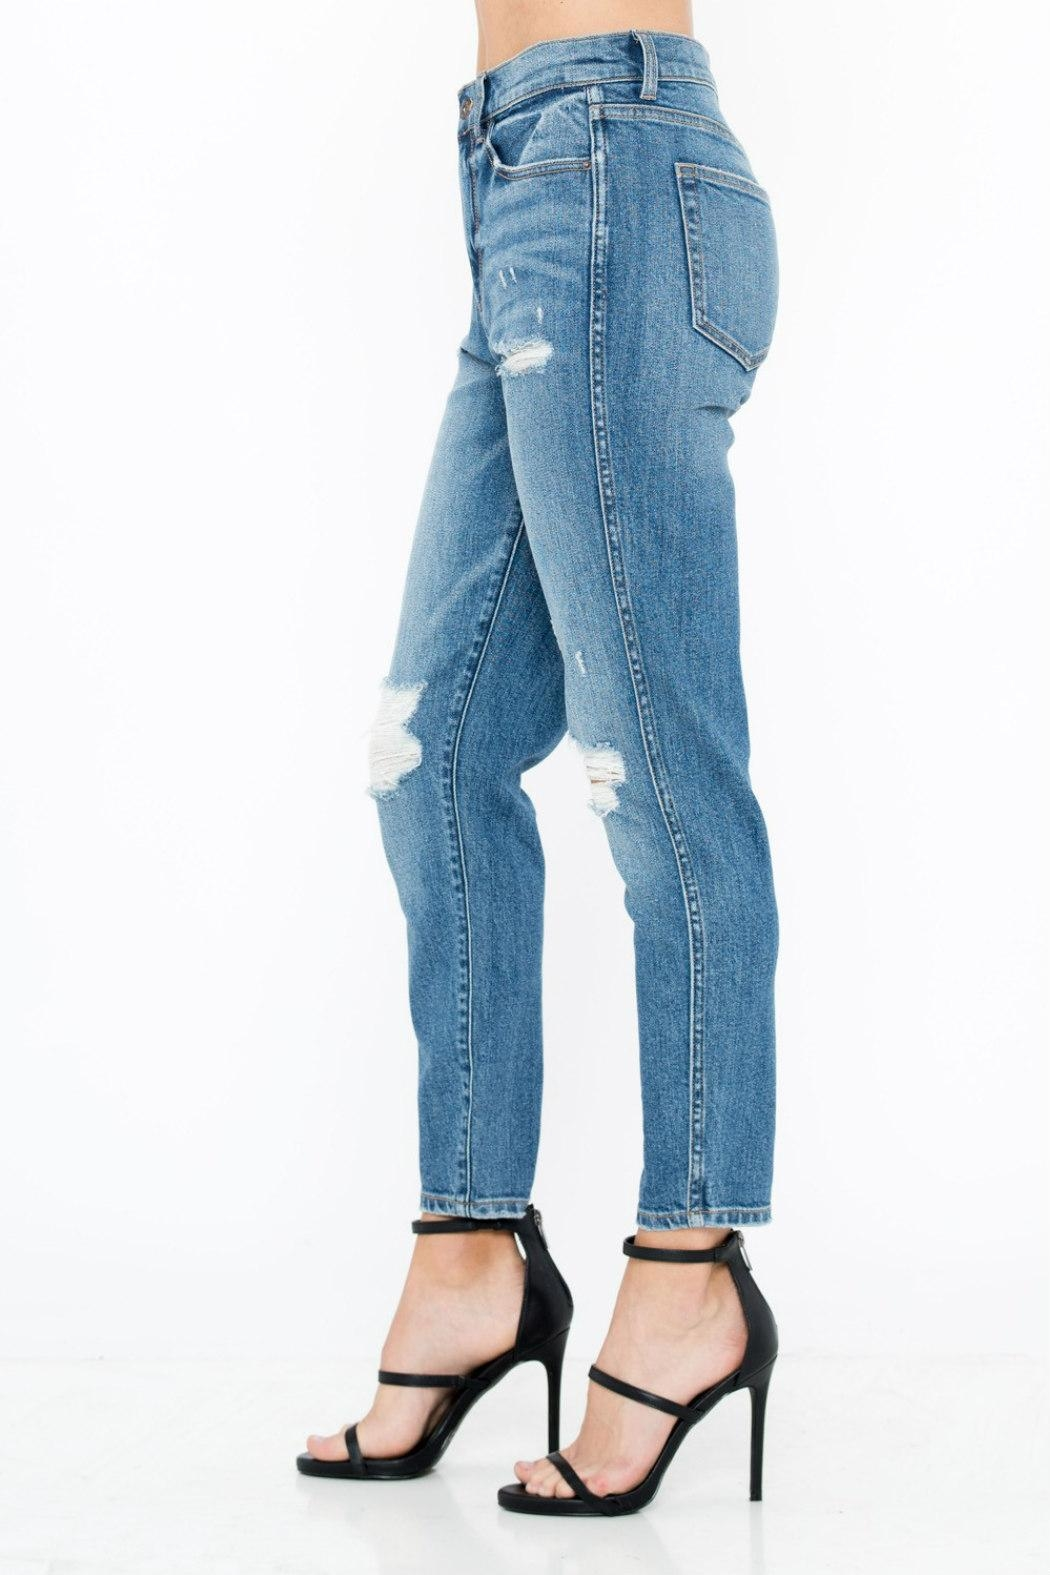 4fb6bd3190c Sneak Peek High-Rise Boyfriend Jean from Statesboro by Sole — Shoptiques